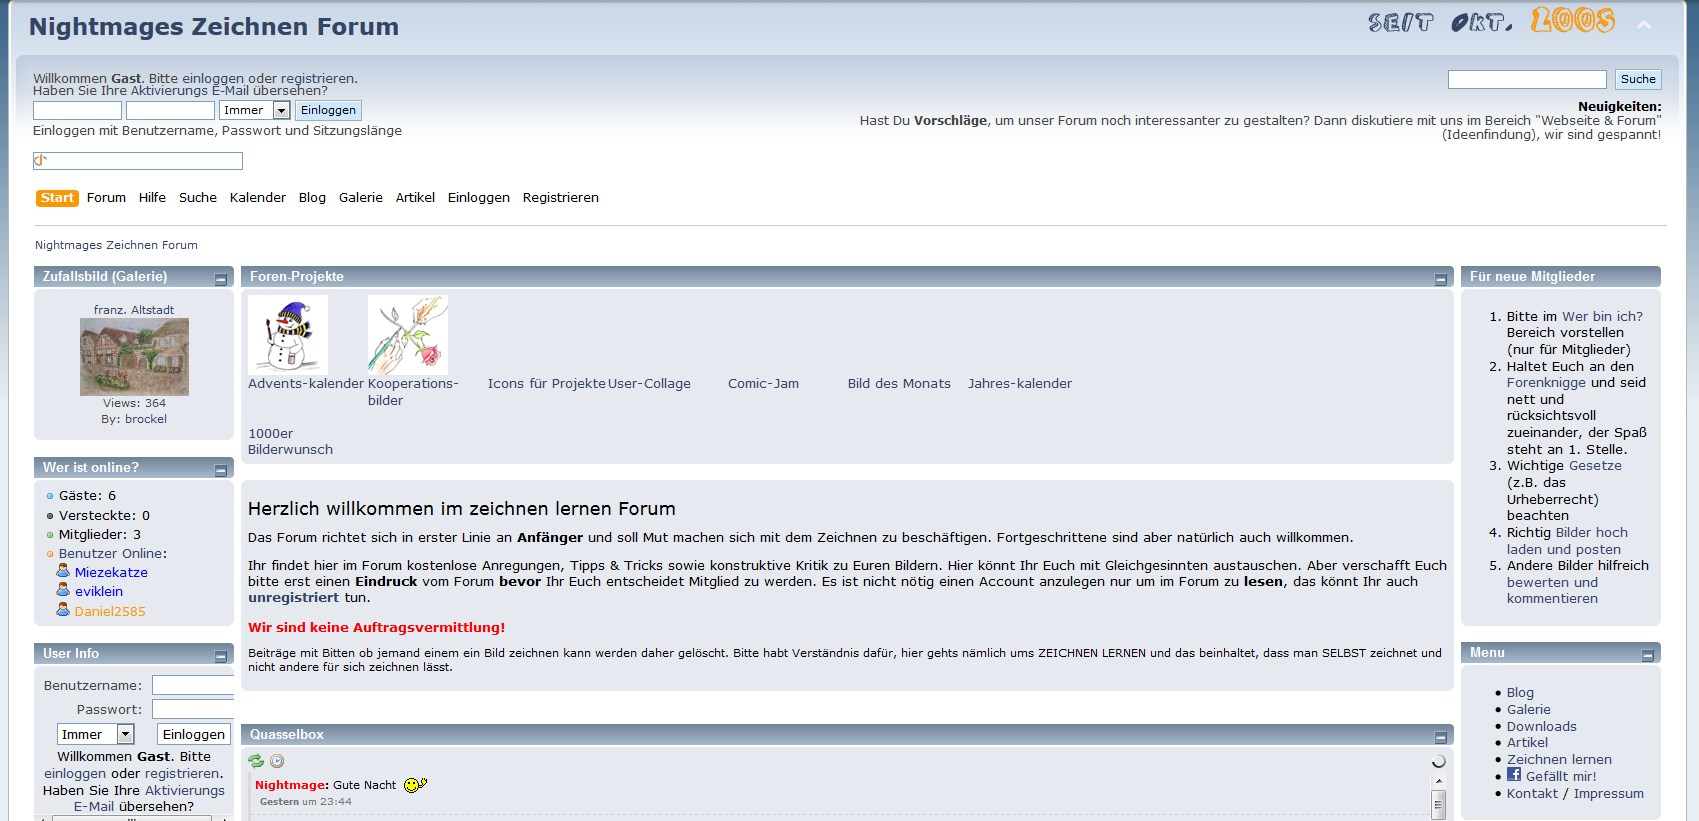 Screenshot: Zeichnen Forum (21.11.2011)